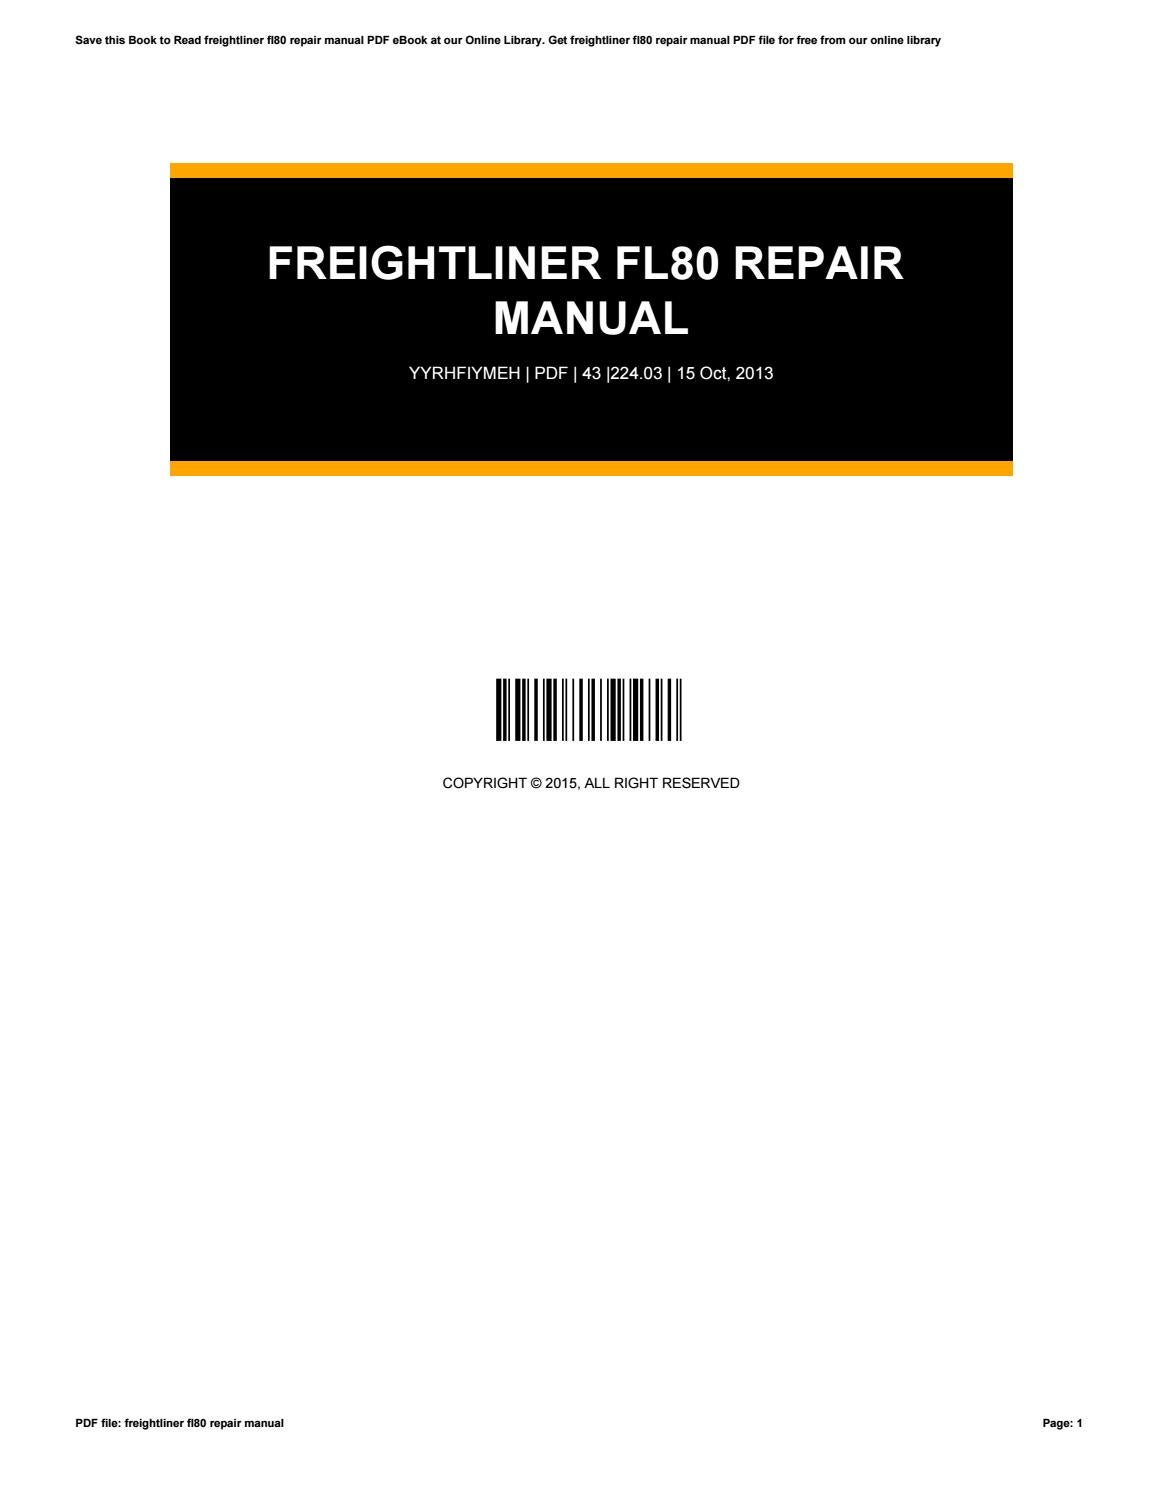 Freightliner fld manual ebook ebook pszicholog us array freightliner fl80 repair manual open source user manual u2022 rh dramatic varieties com fandeluxe Image collections